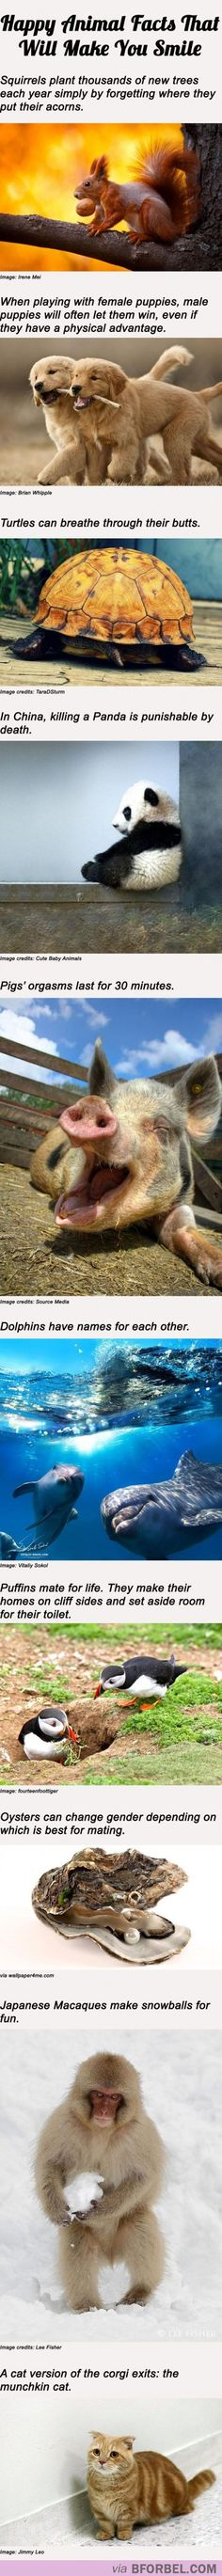 10 Happy Animal Facts That Will Make You Smile…